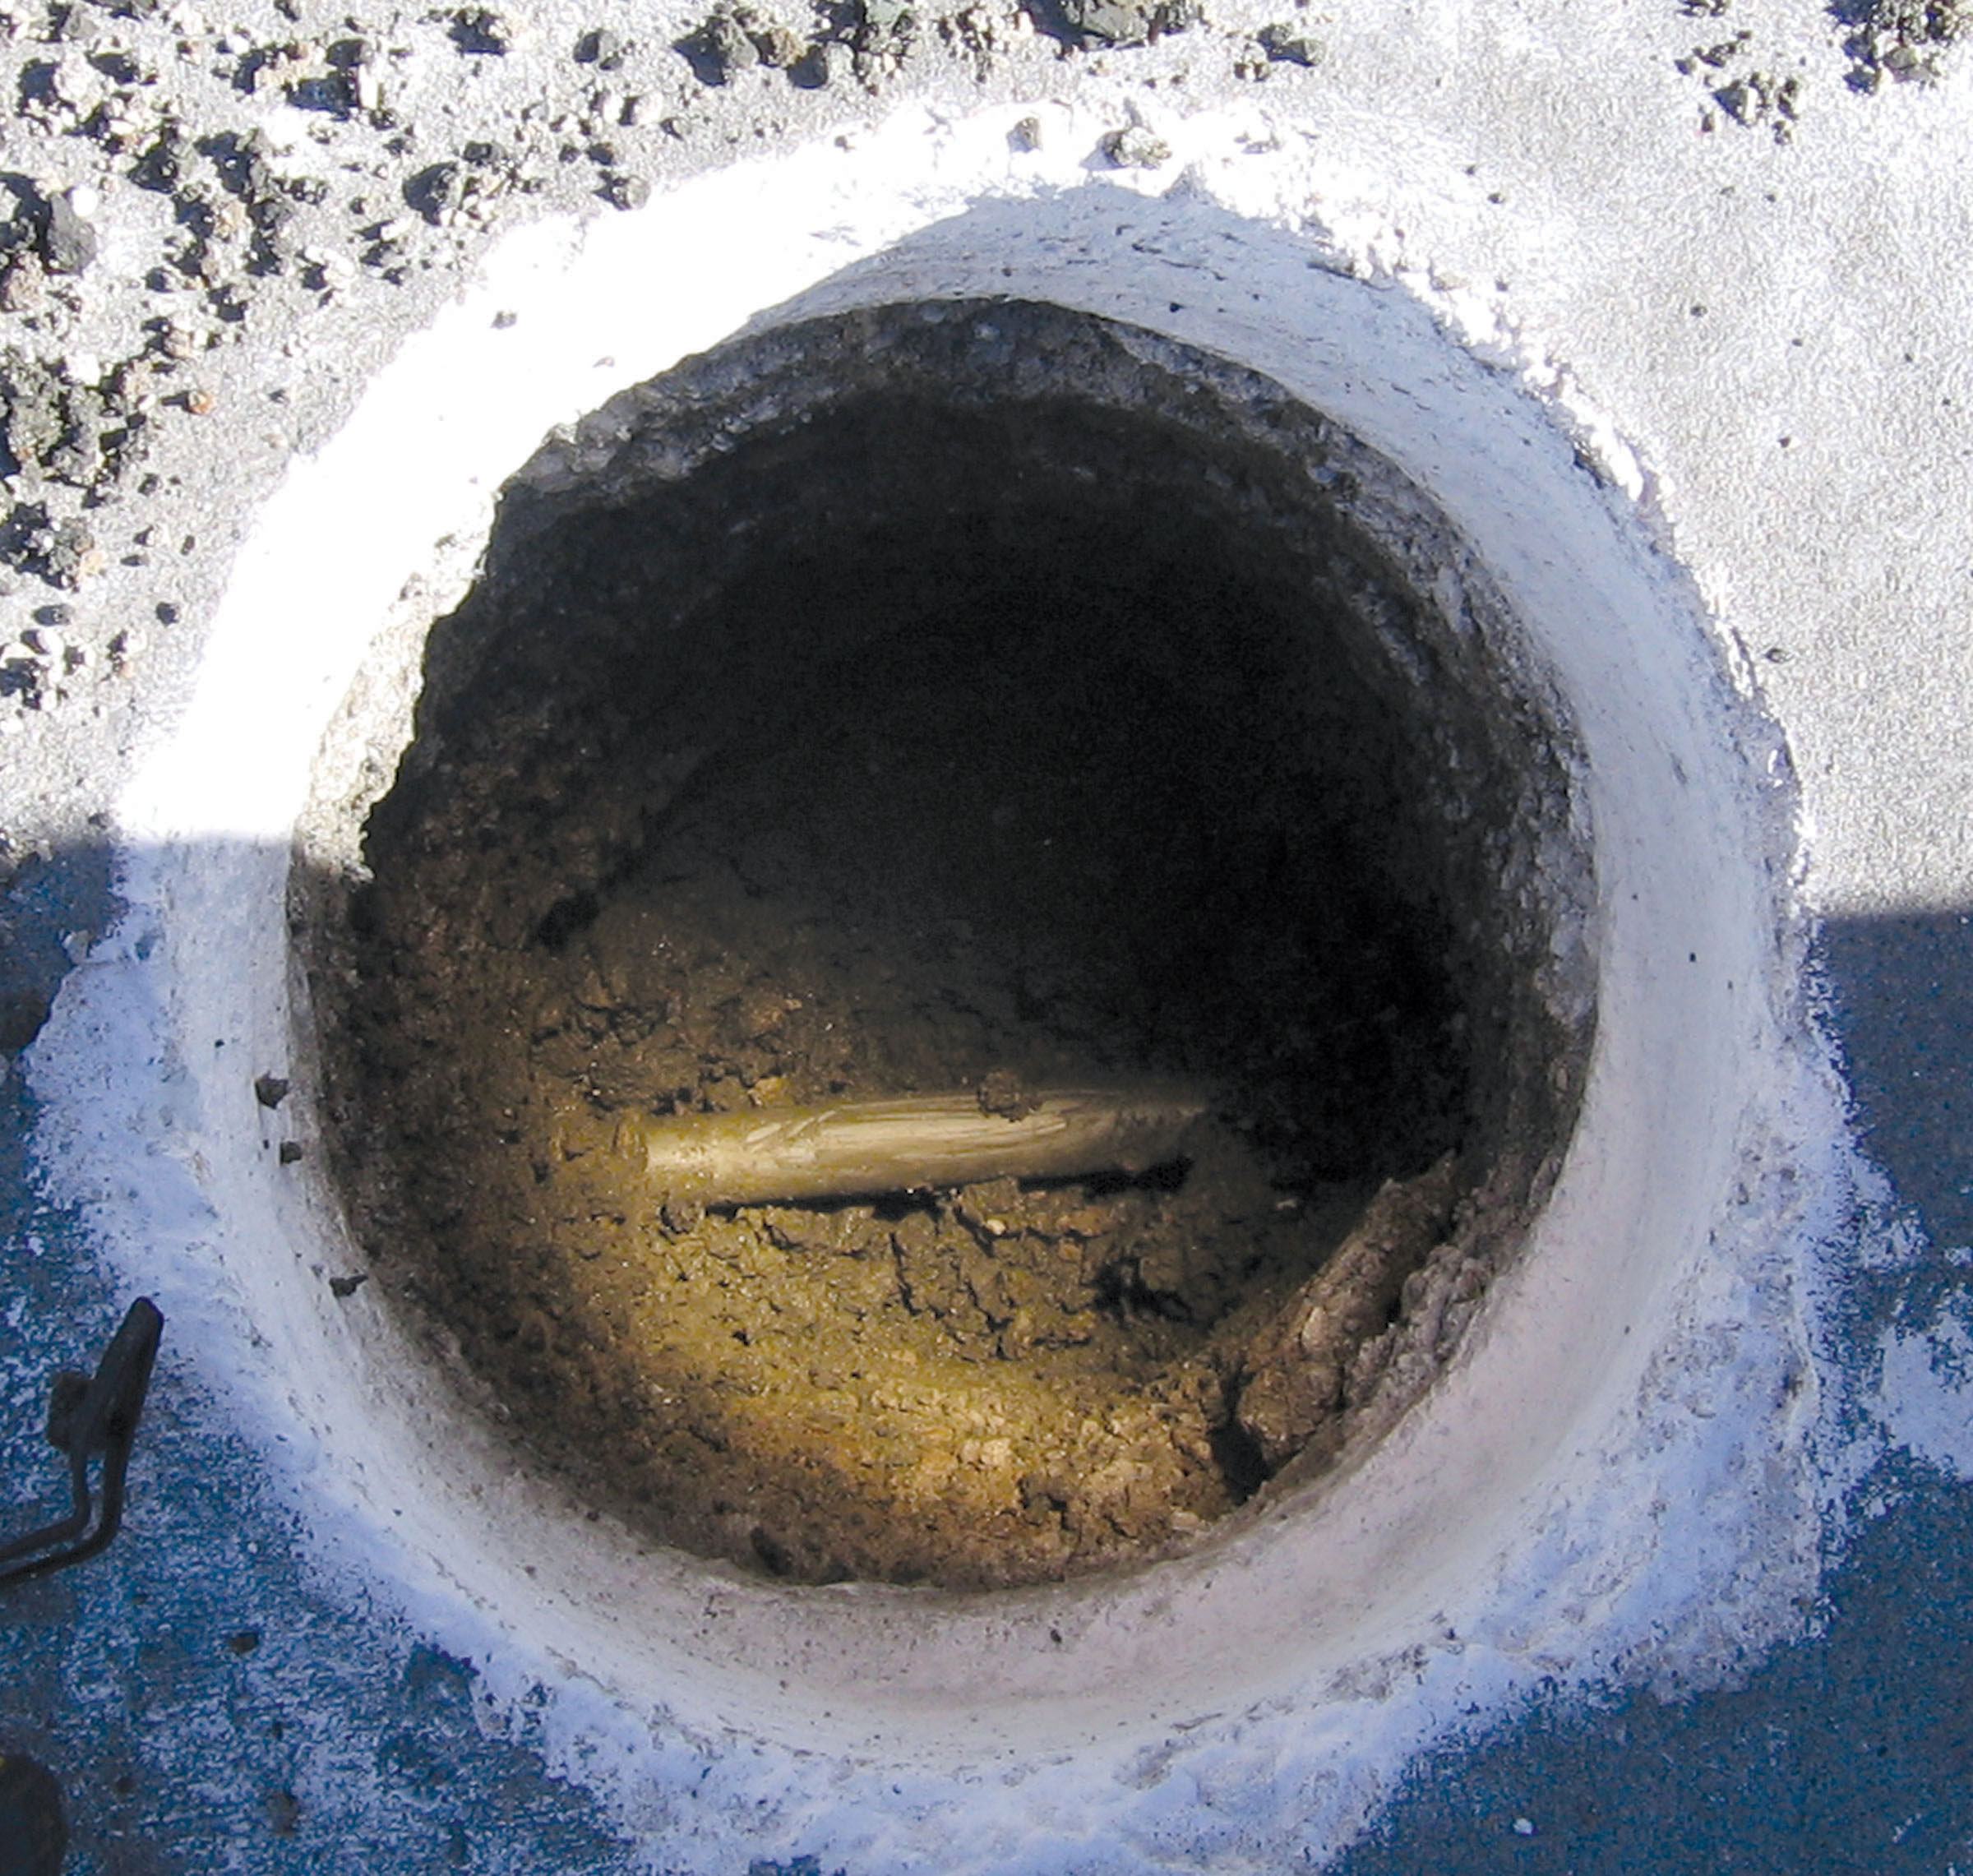 Typical vacuum excavation hole